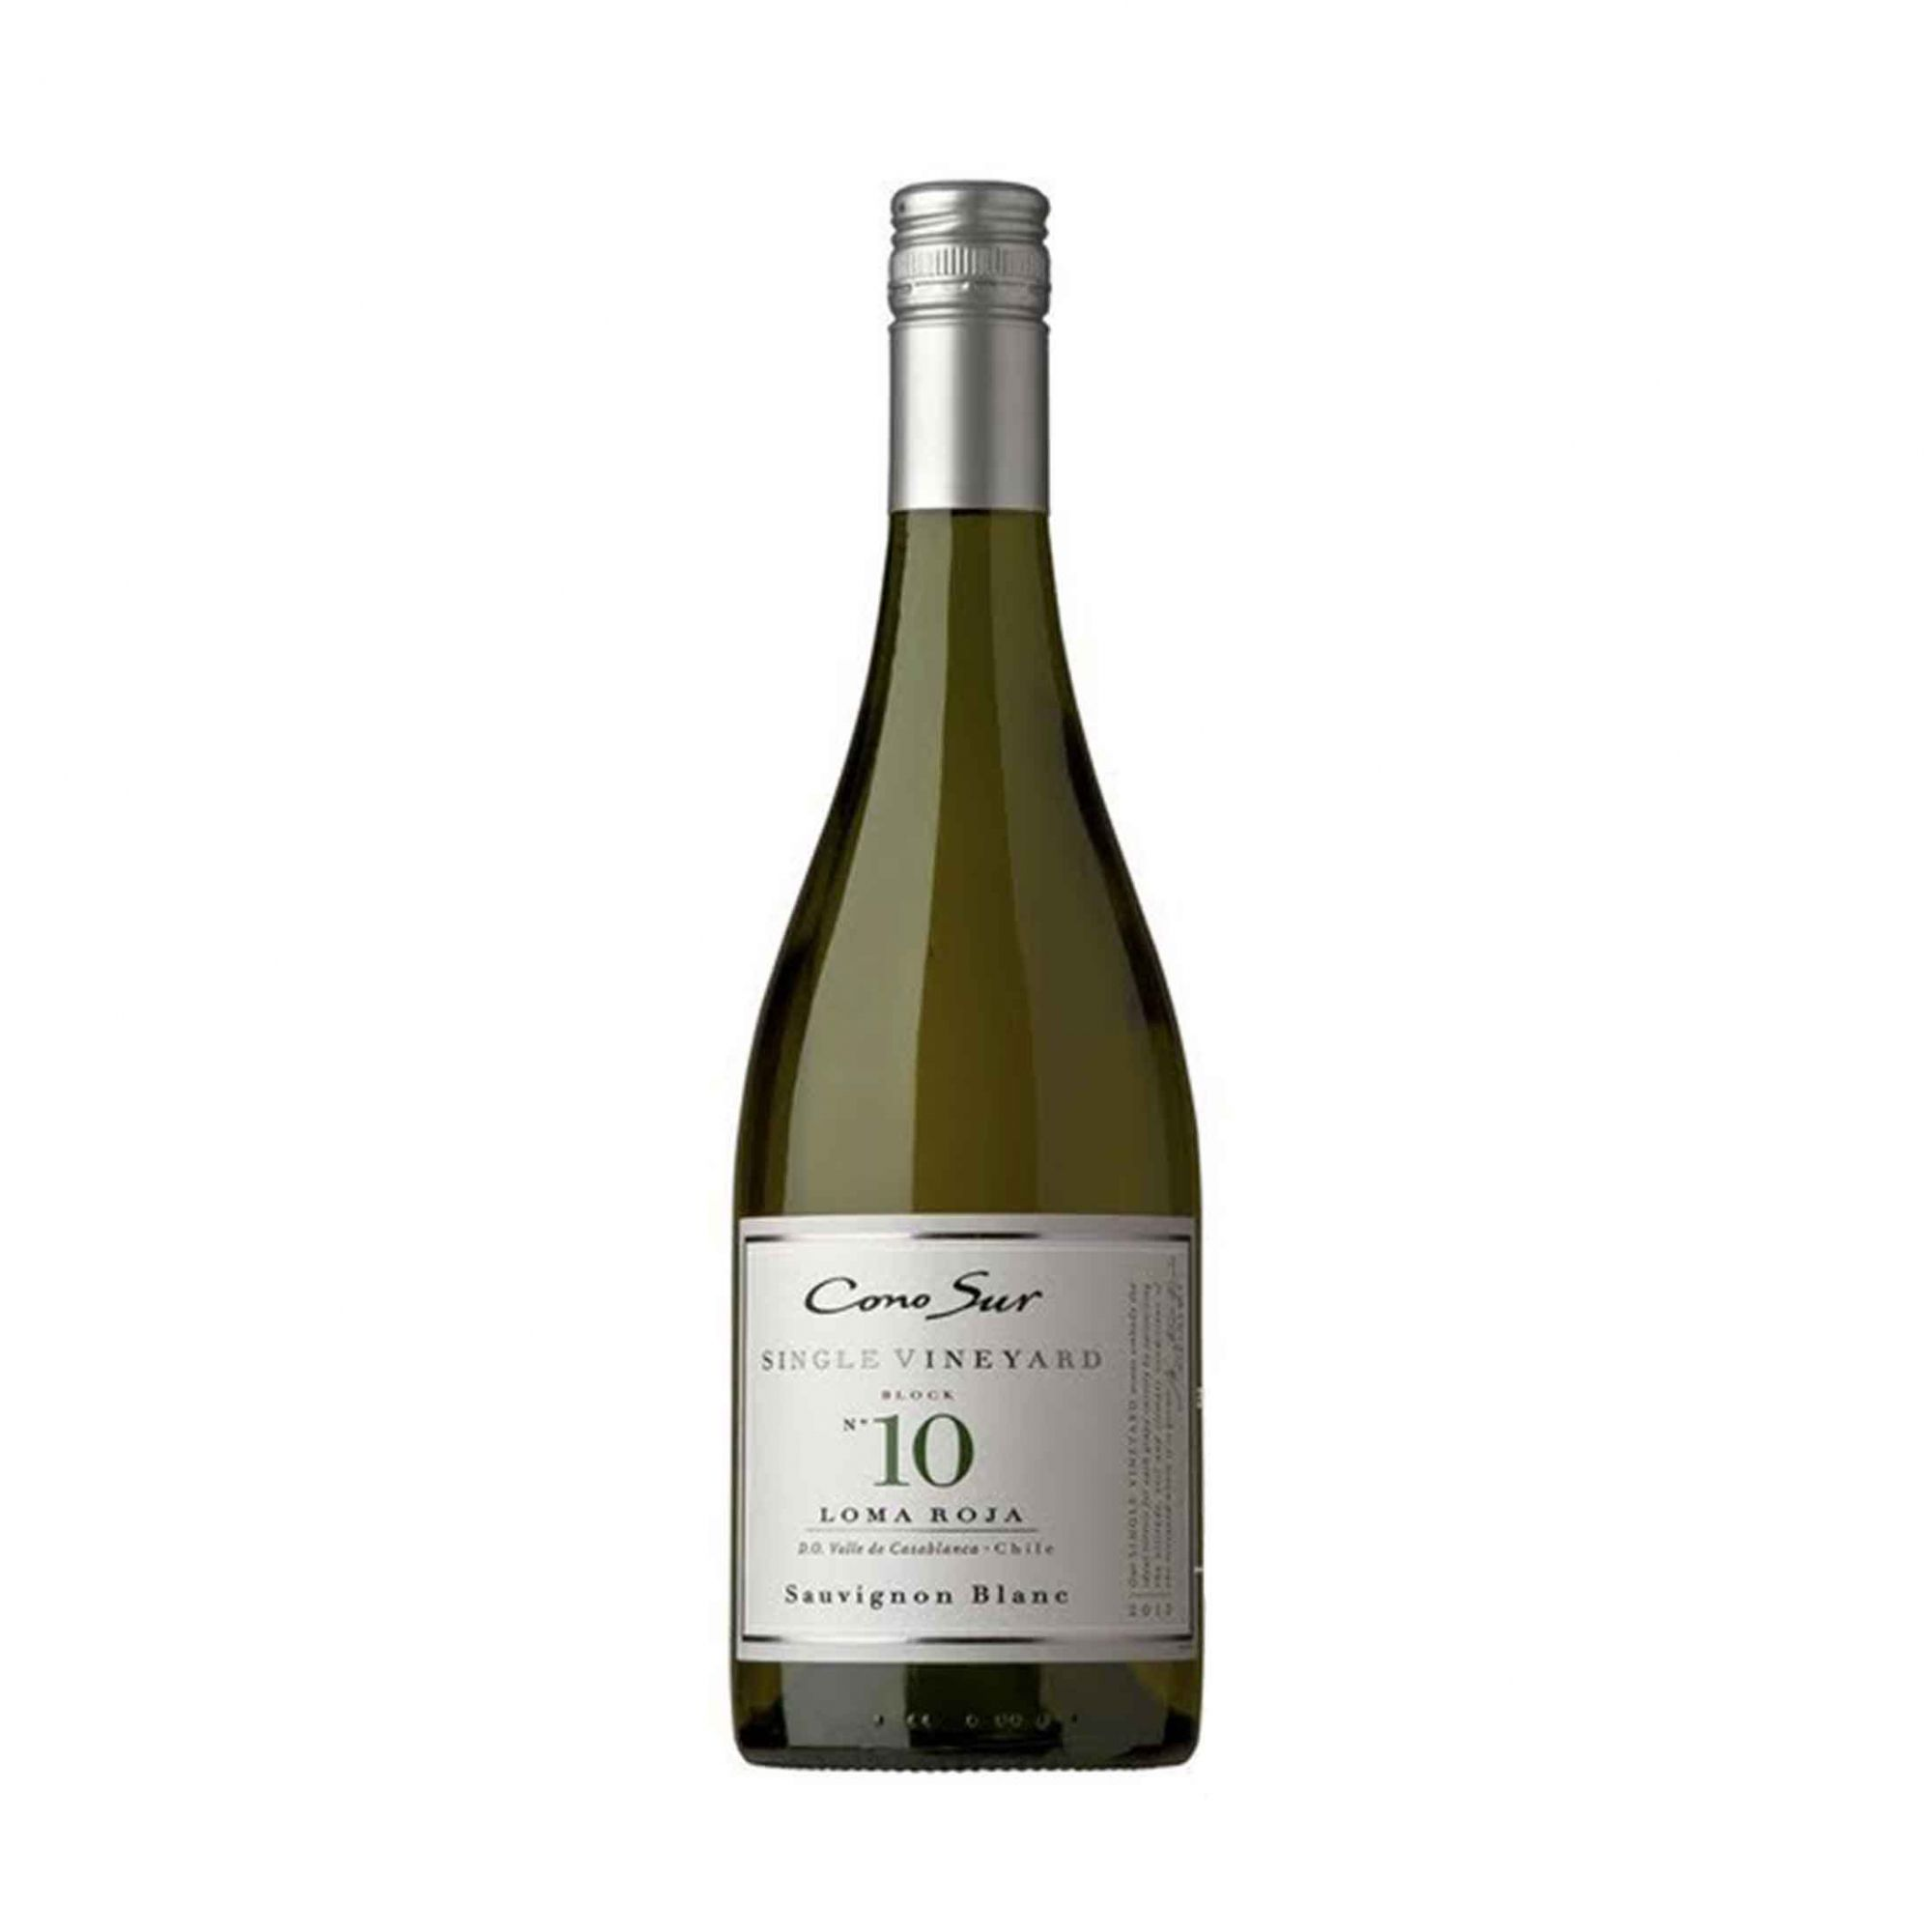 Cono Sur Single Vineyard Sauv Blanc